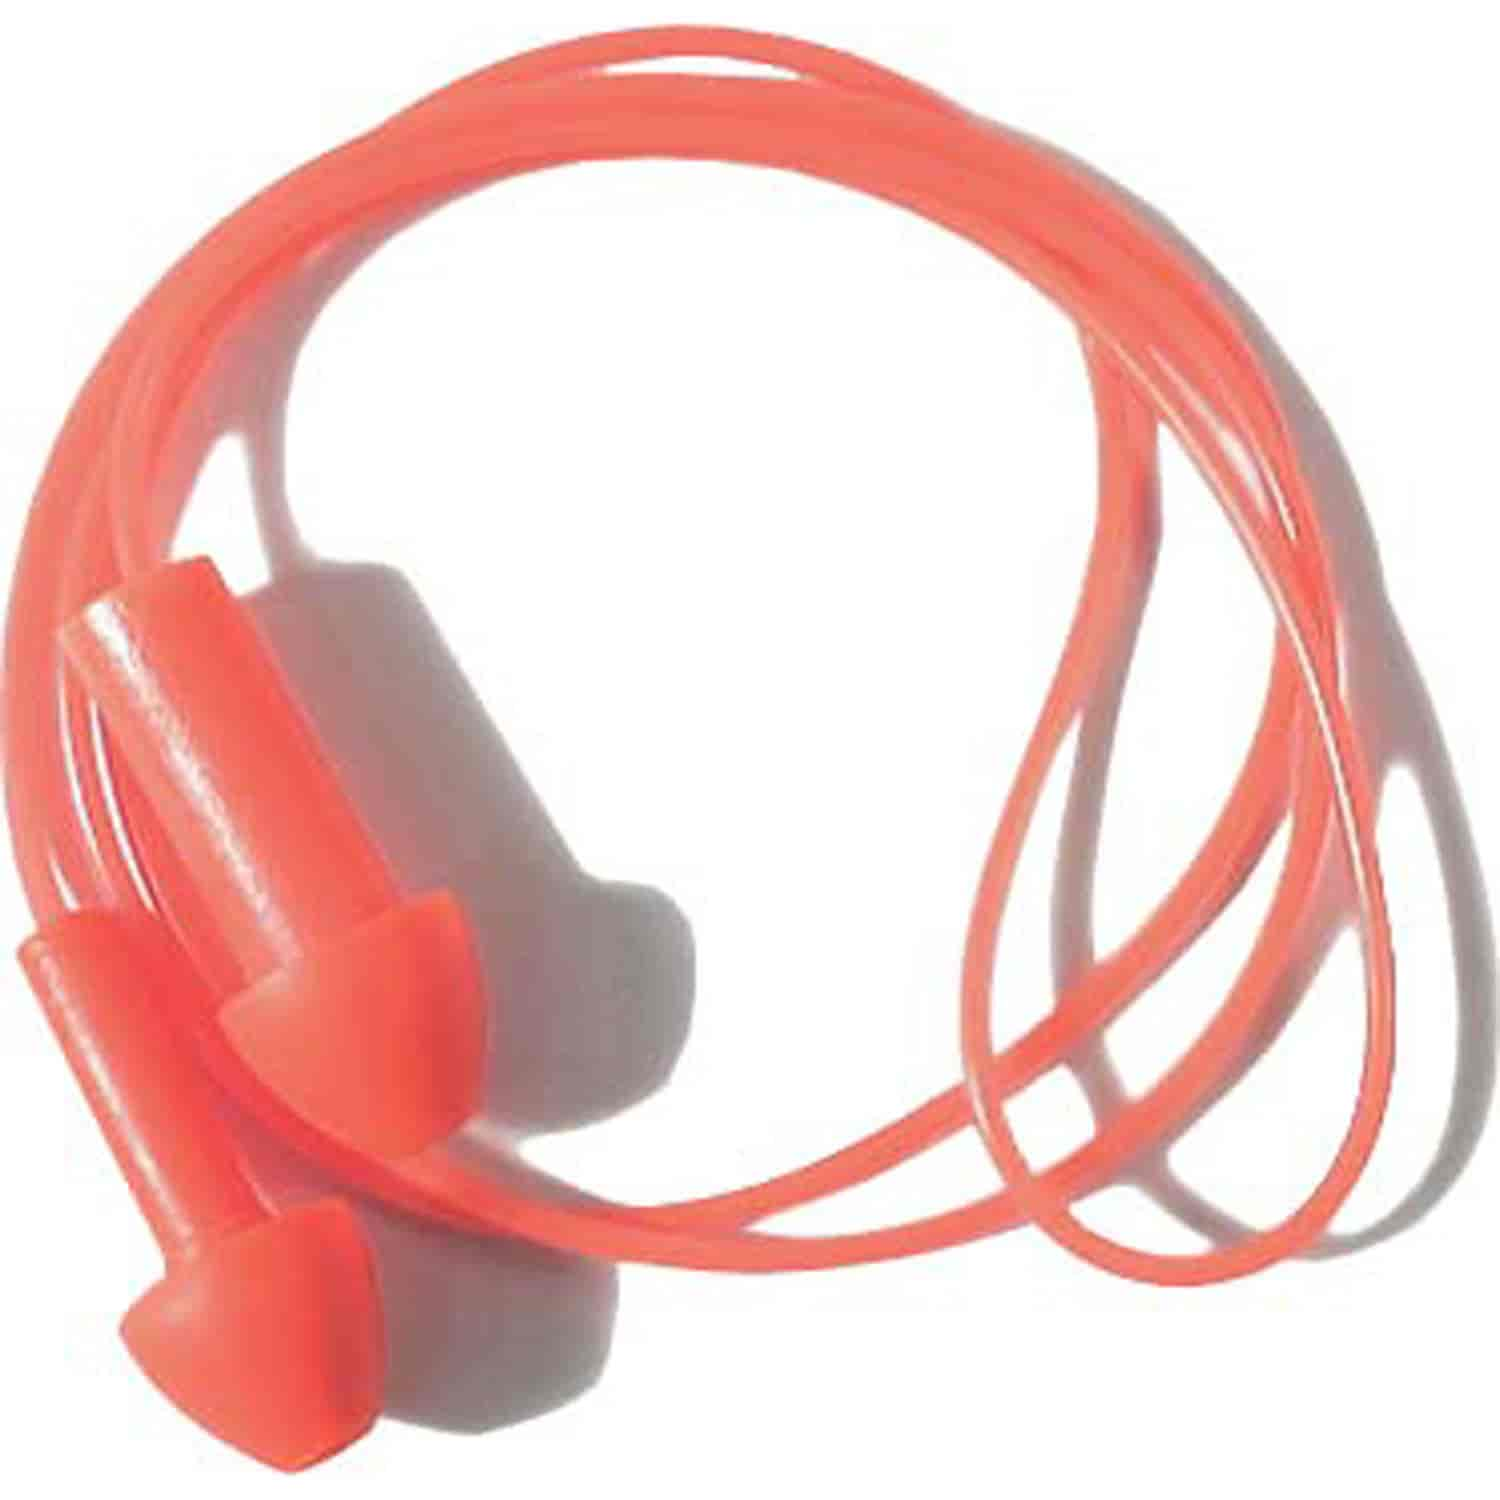 Allstar Performance ALL12000 - Allstar Ear Protection